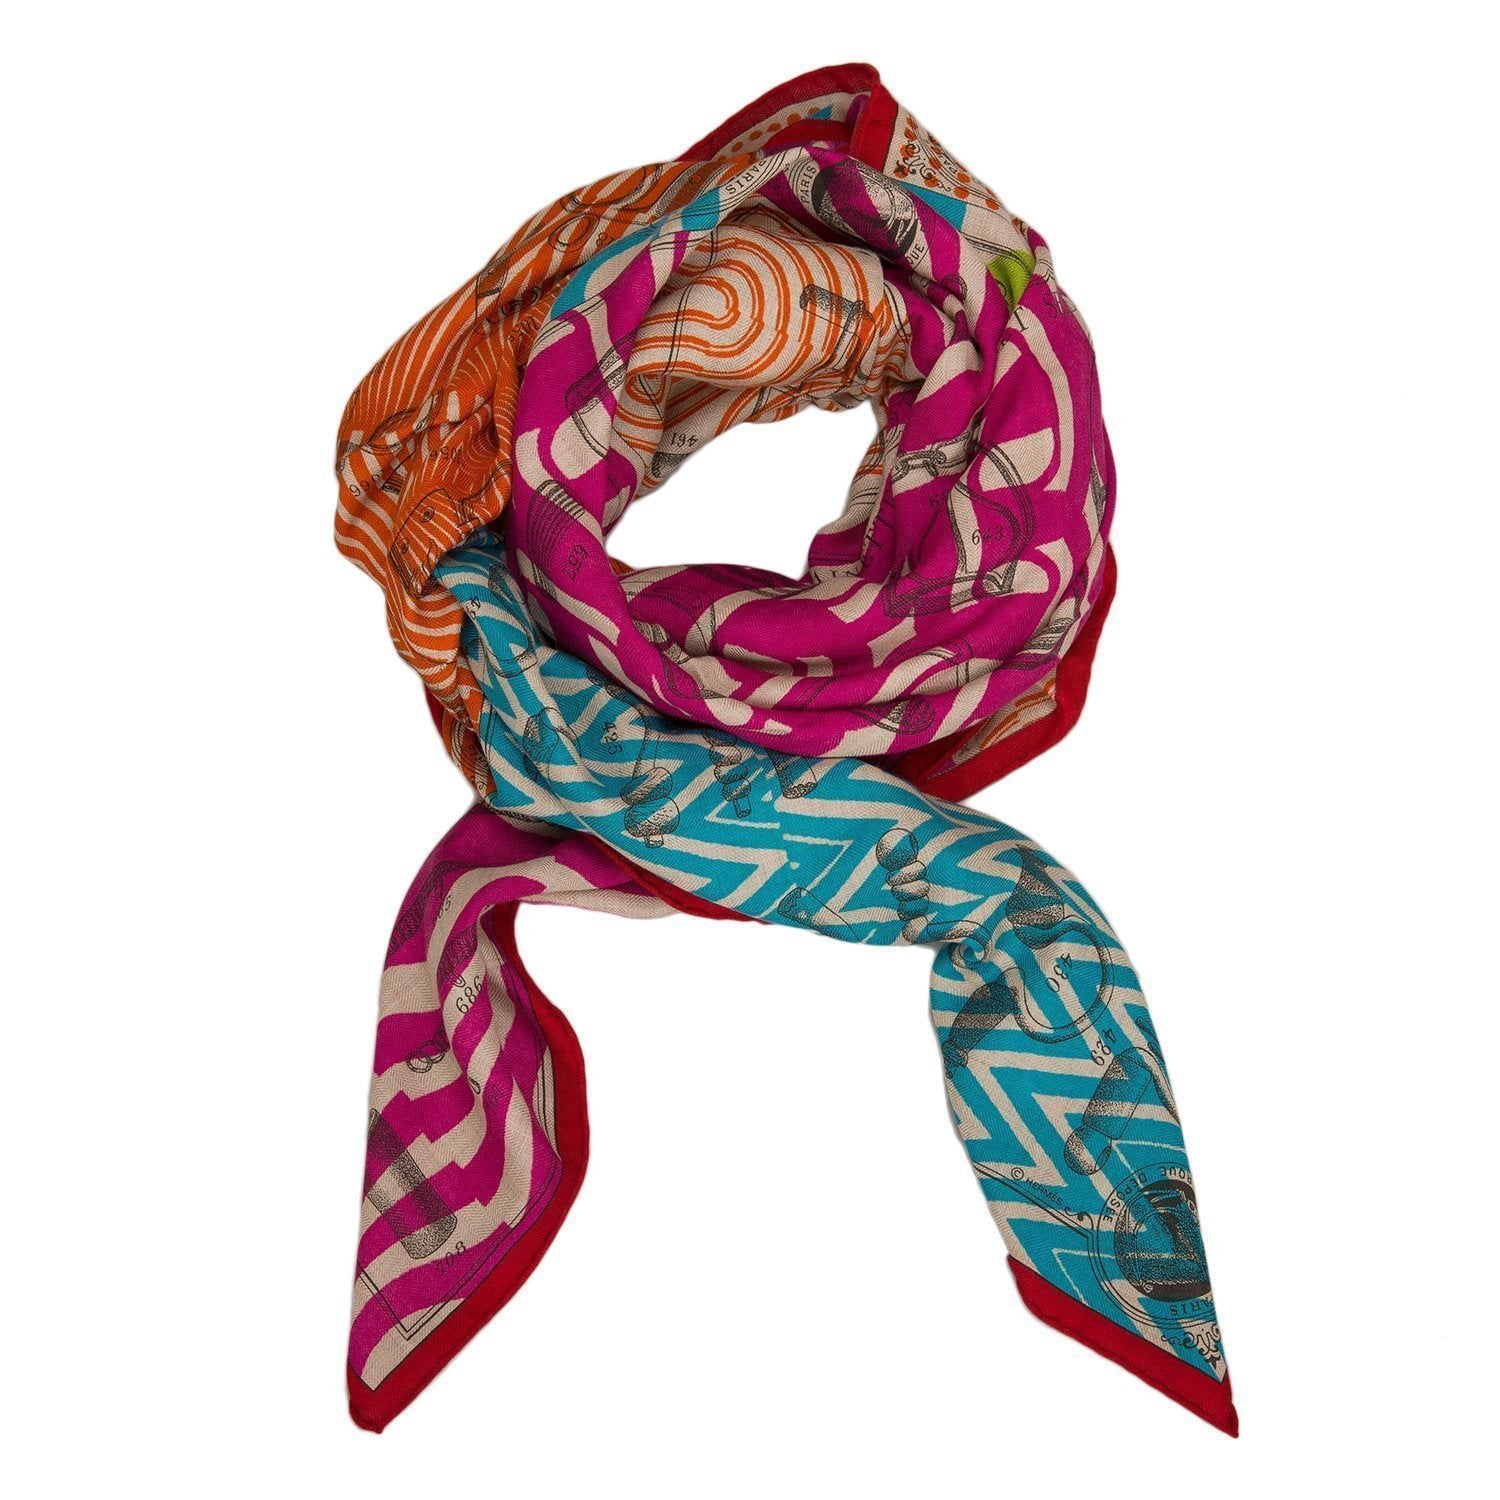 Hermes Manufacture De Boucleries Cashmere And Silk Shawl 140Cm Scarves